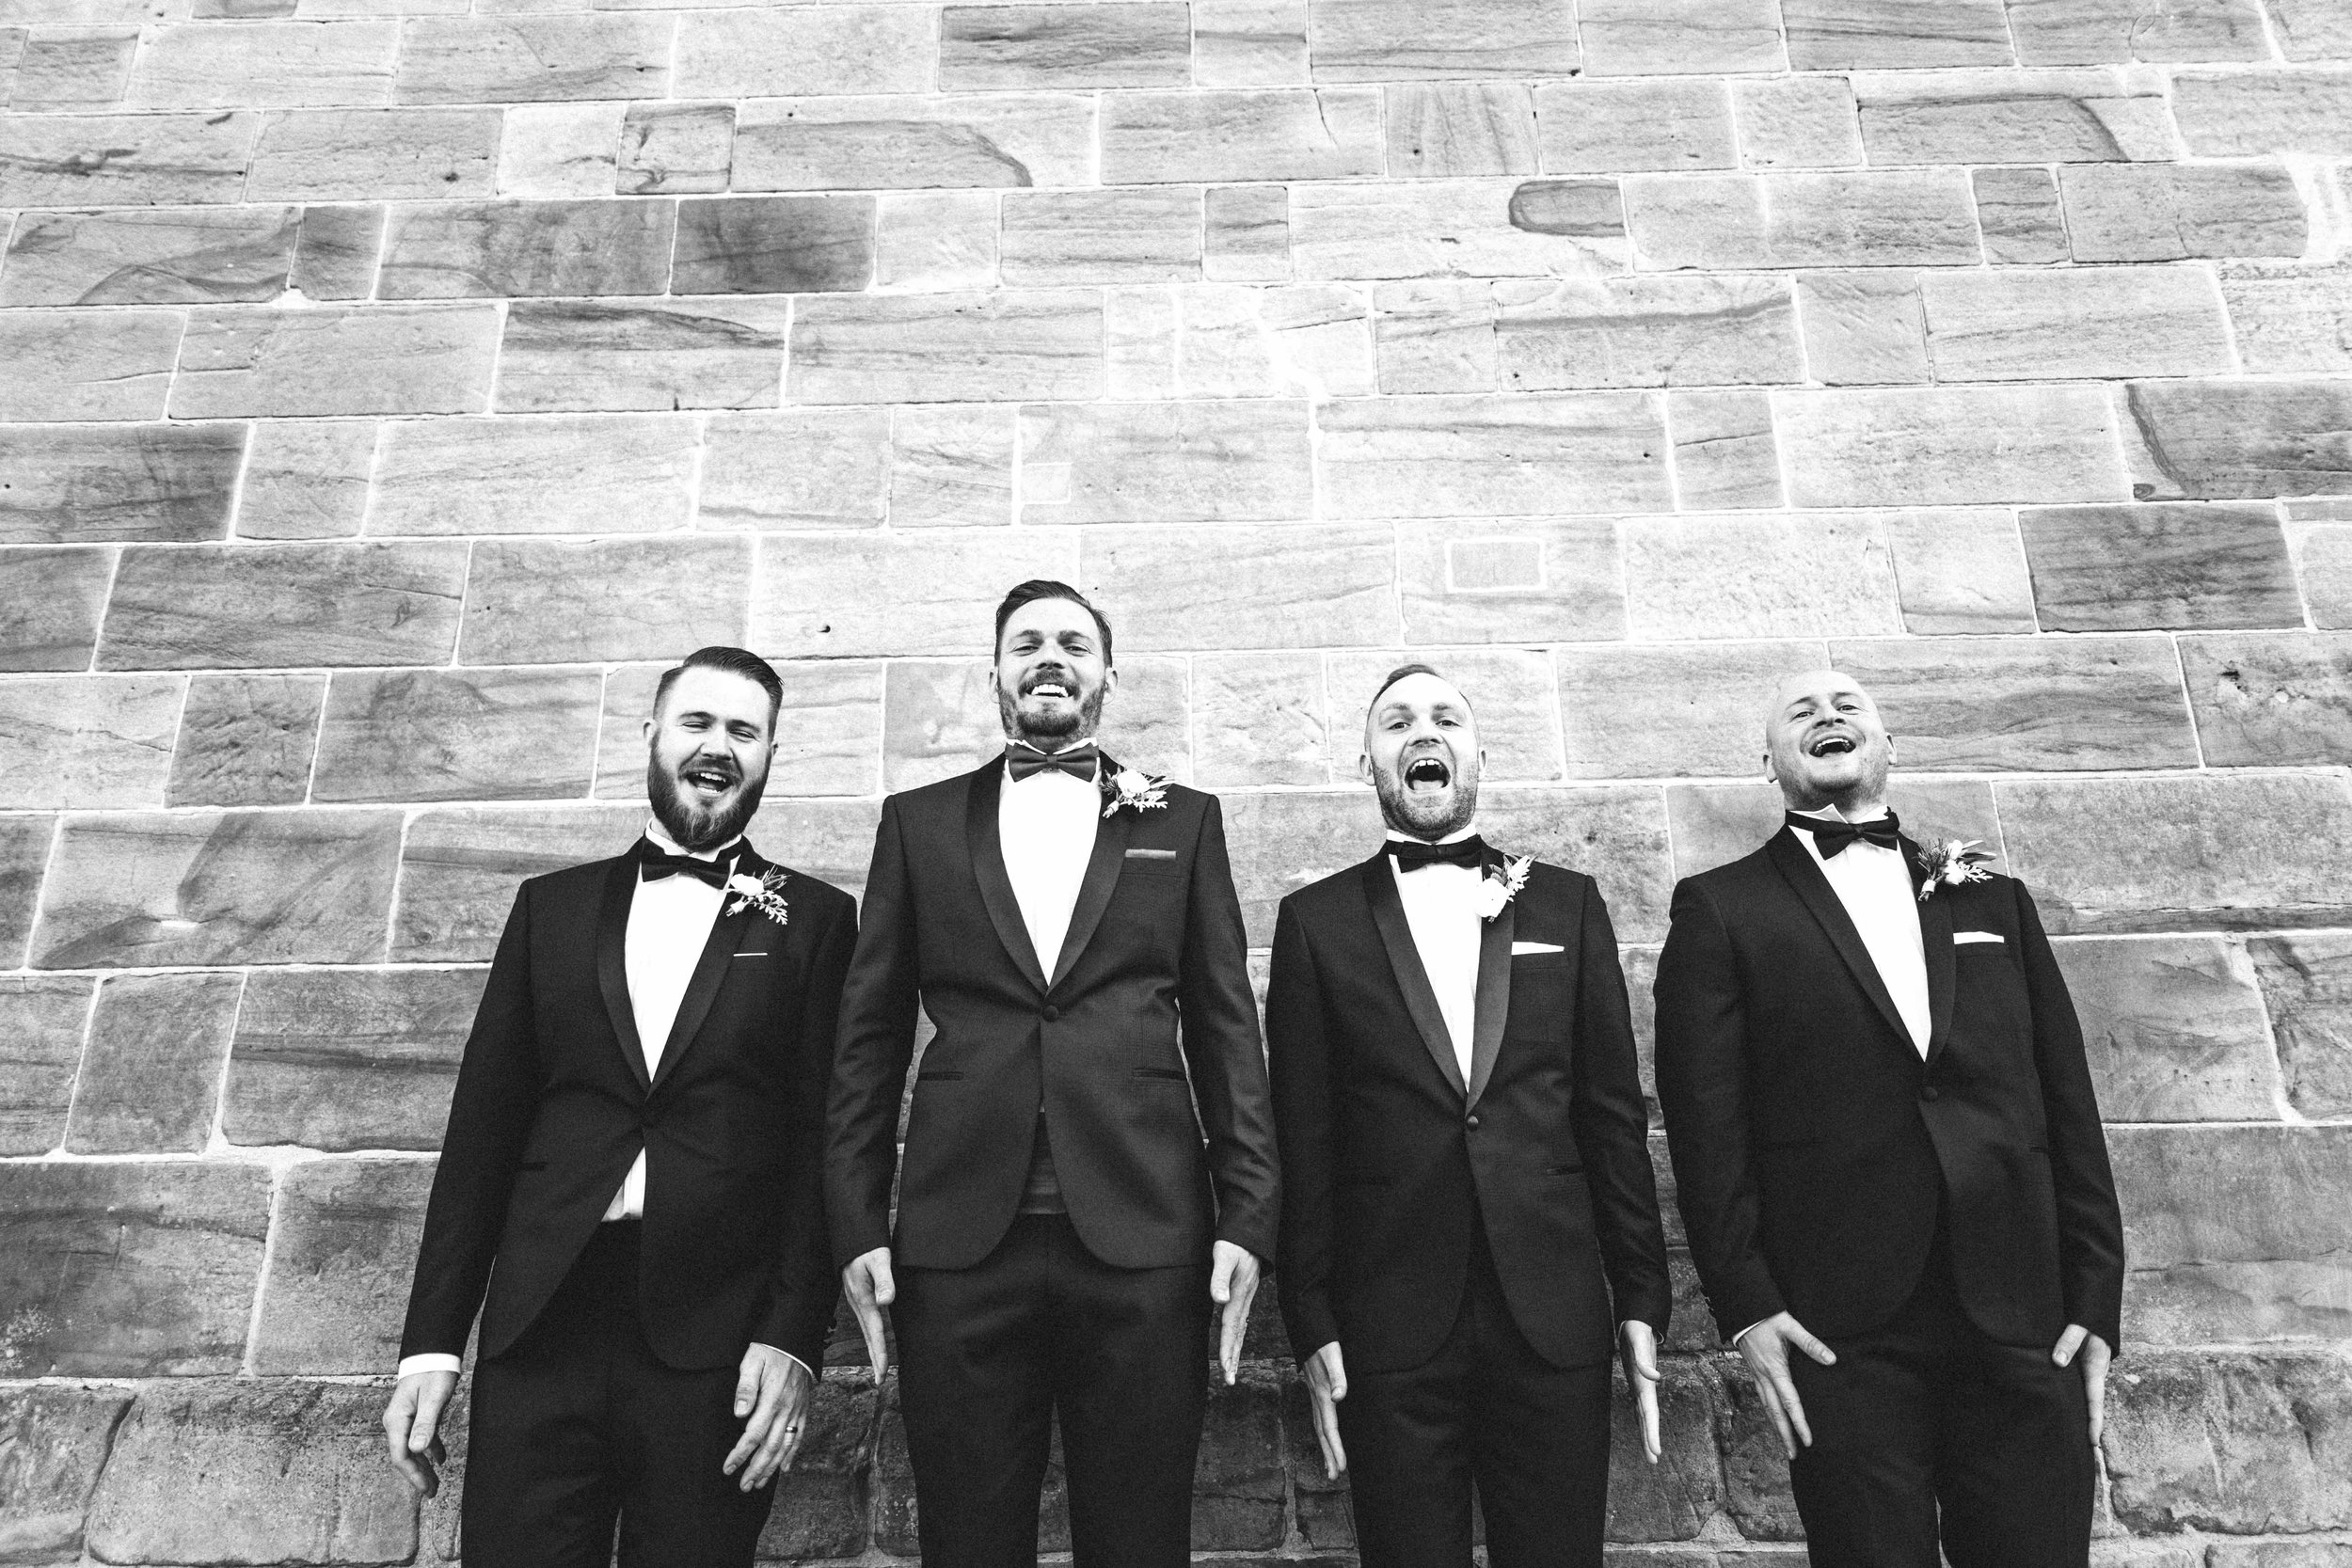 The groom and his ushers